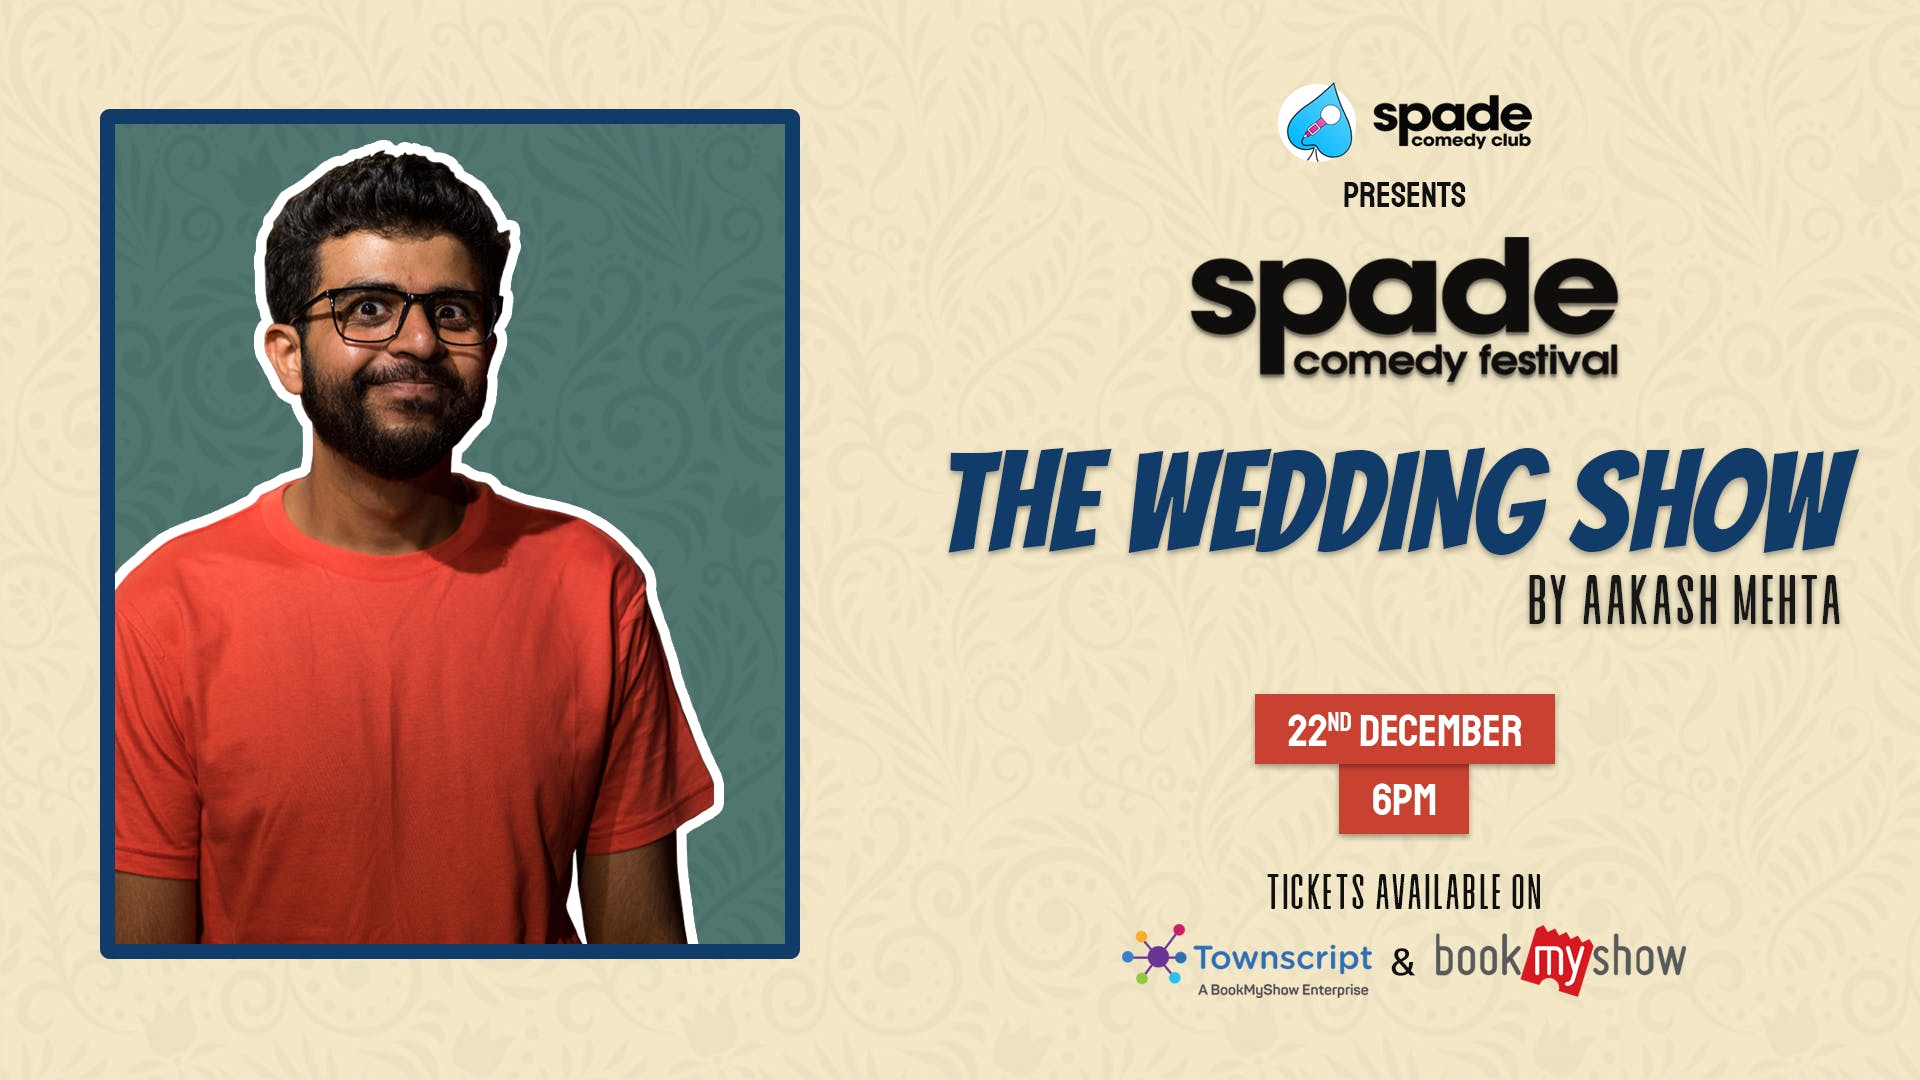 The Wedding Show by Aakash Mehta at Spade Comedy Festival